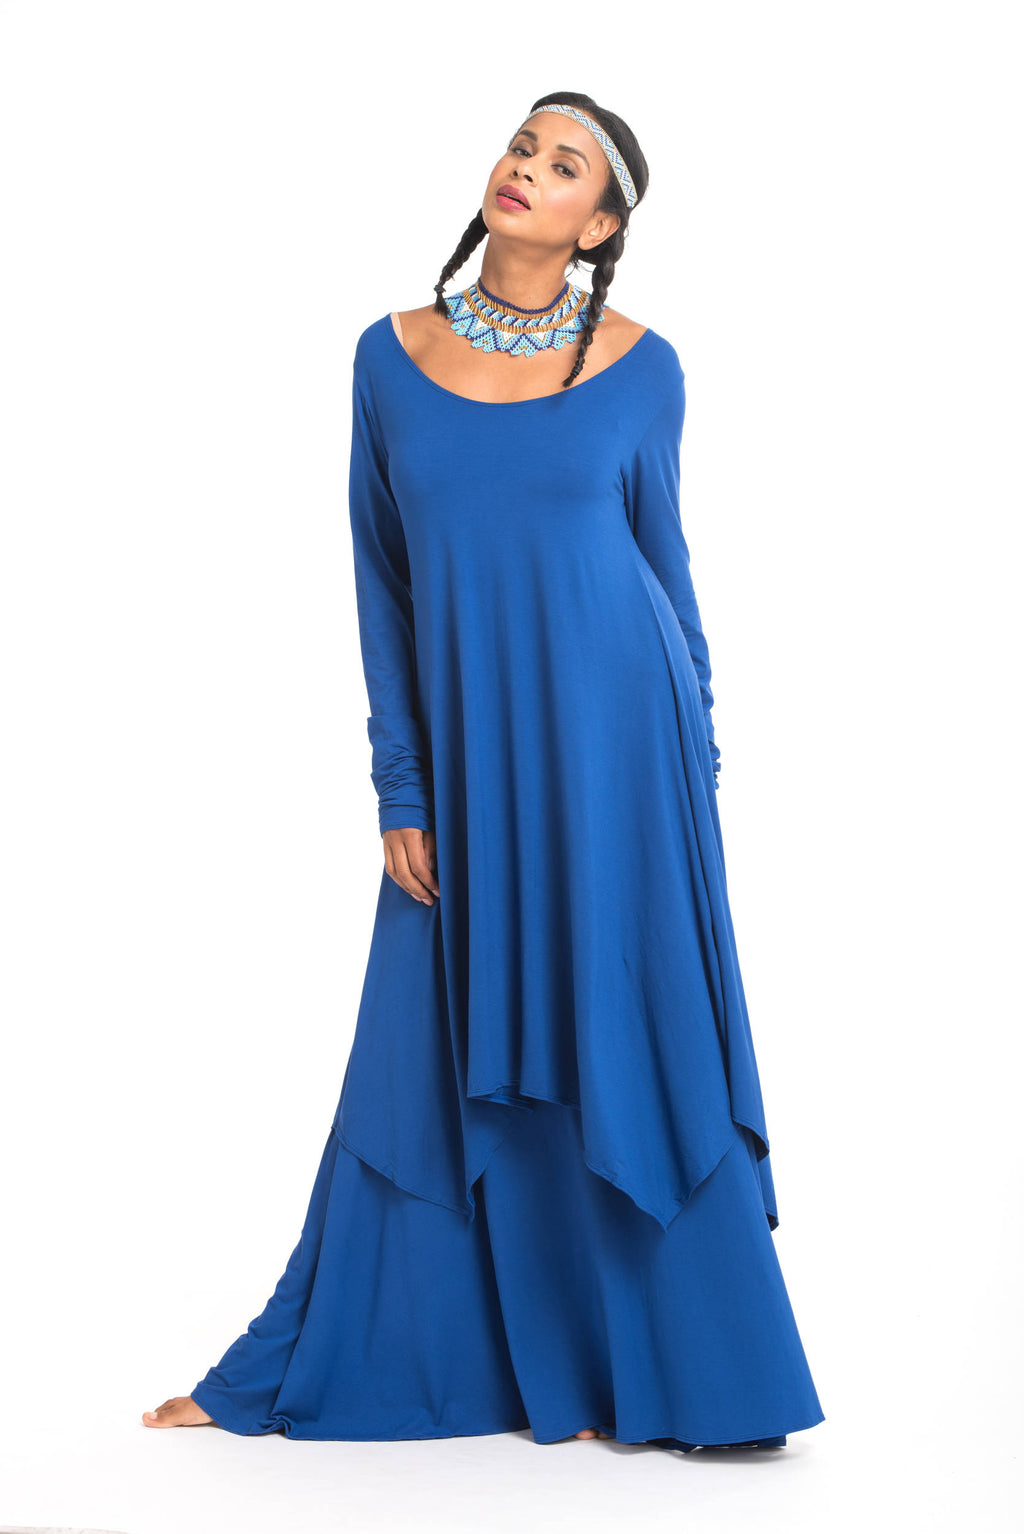 Bamboo Flamenco Skirt Cobalt Blue - MUDRA